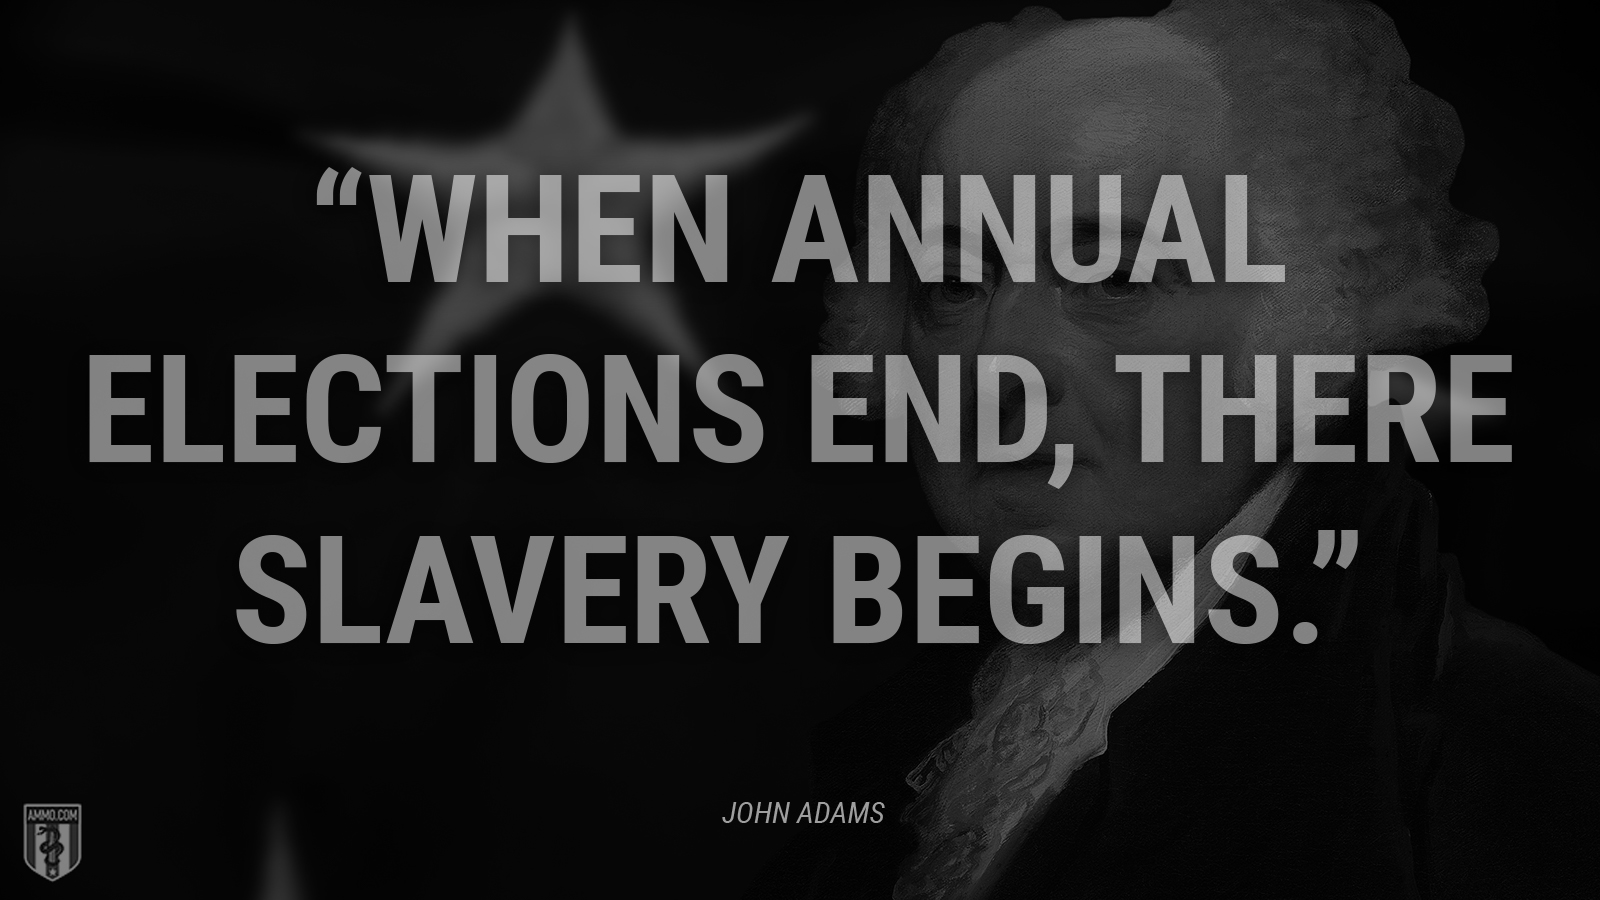 """""""When annual elections end, there slavery begins."""" - John Adams"""